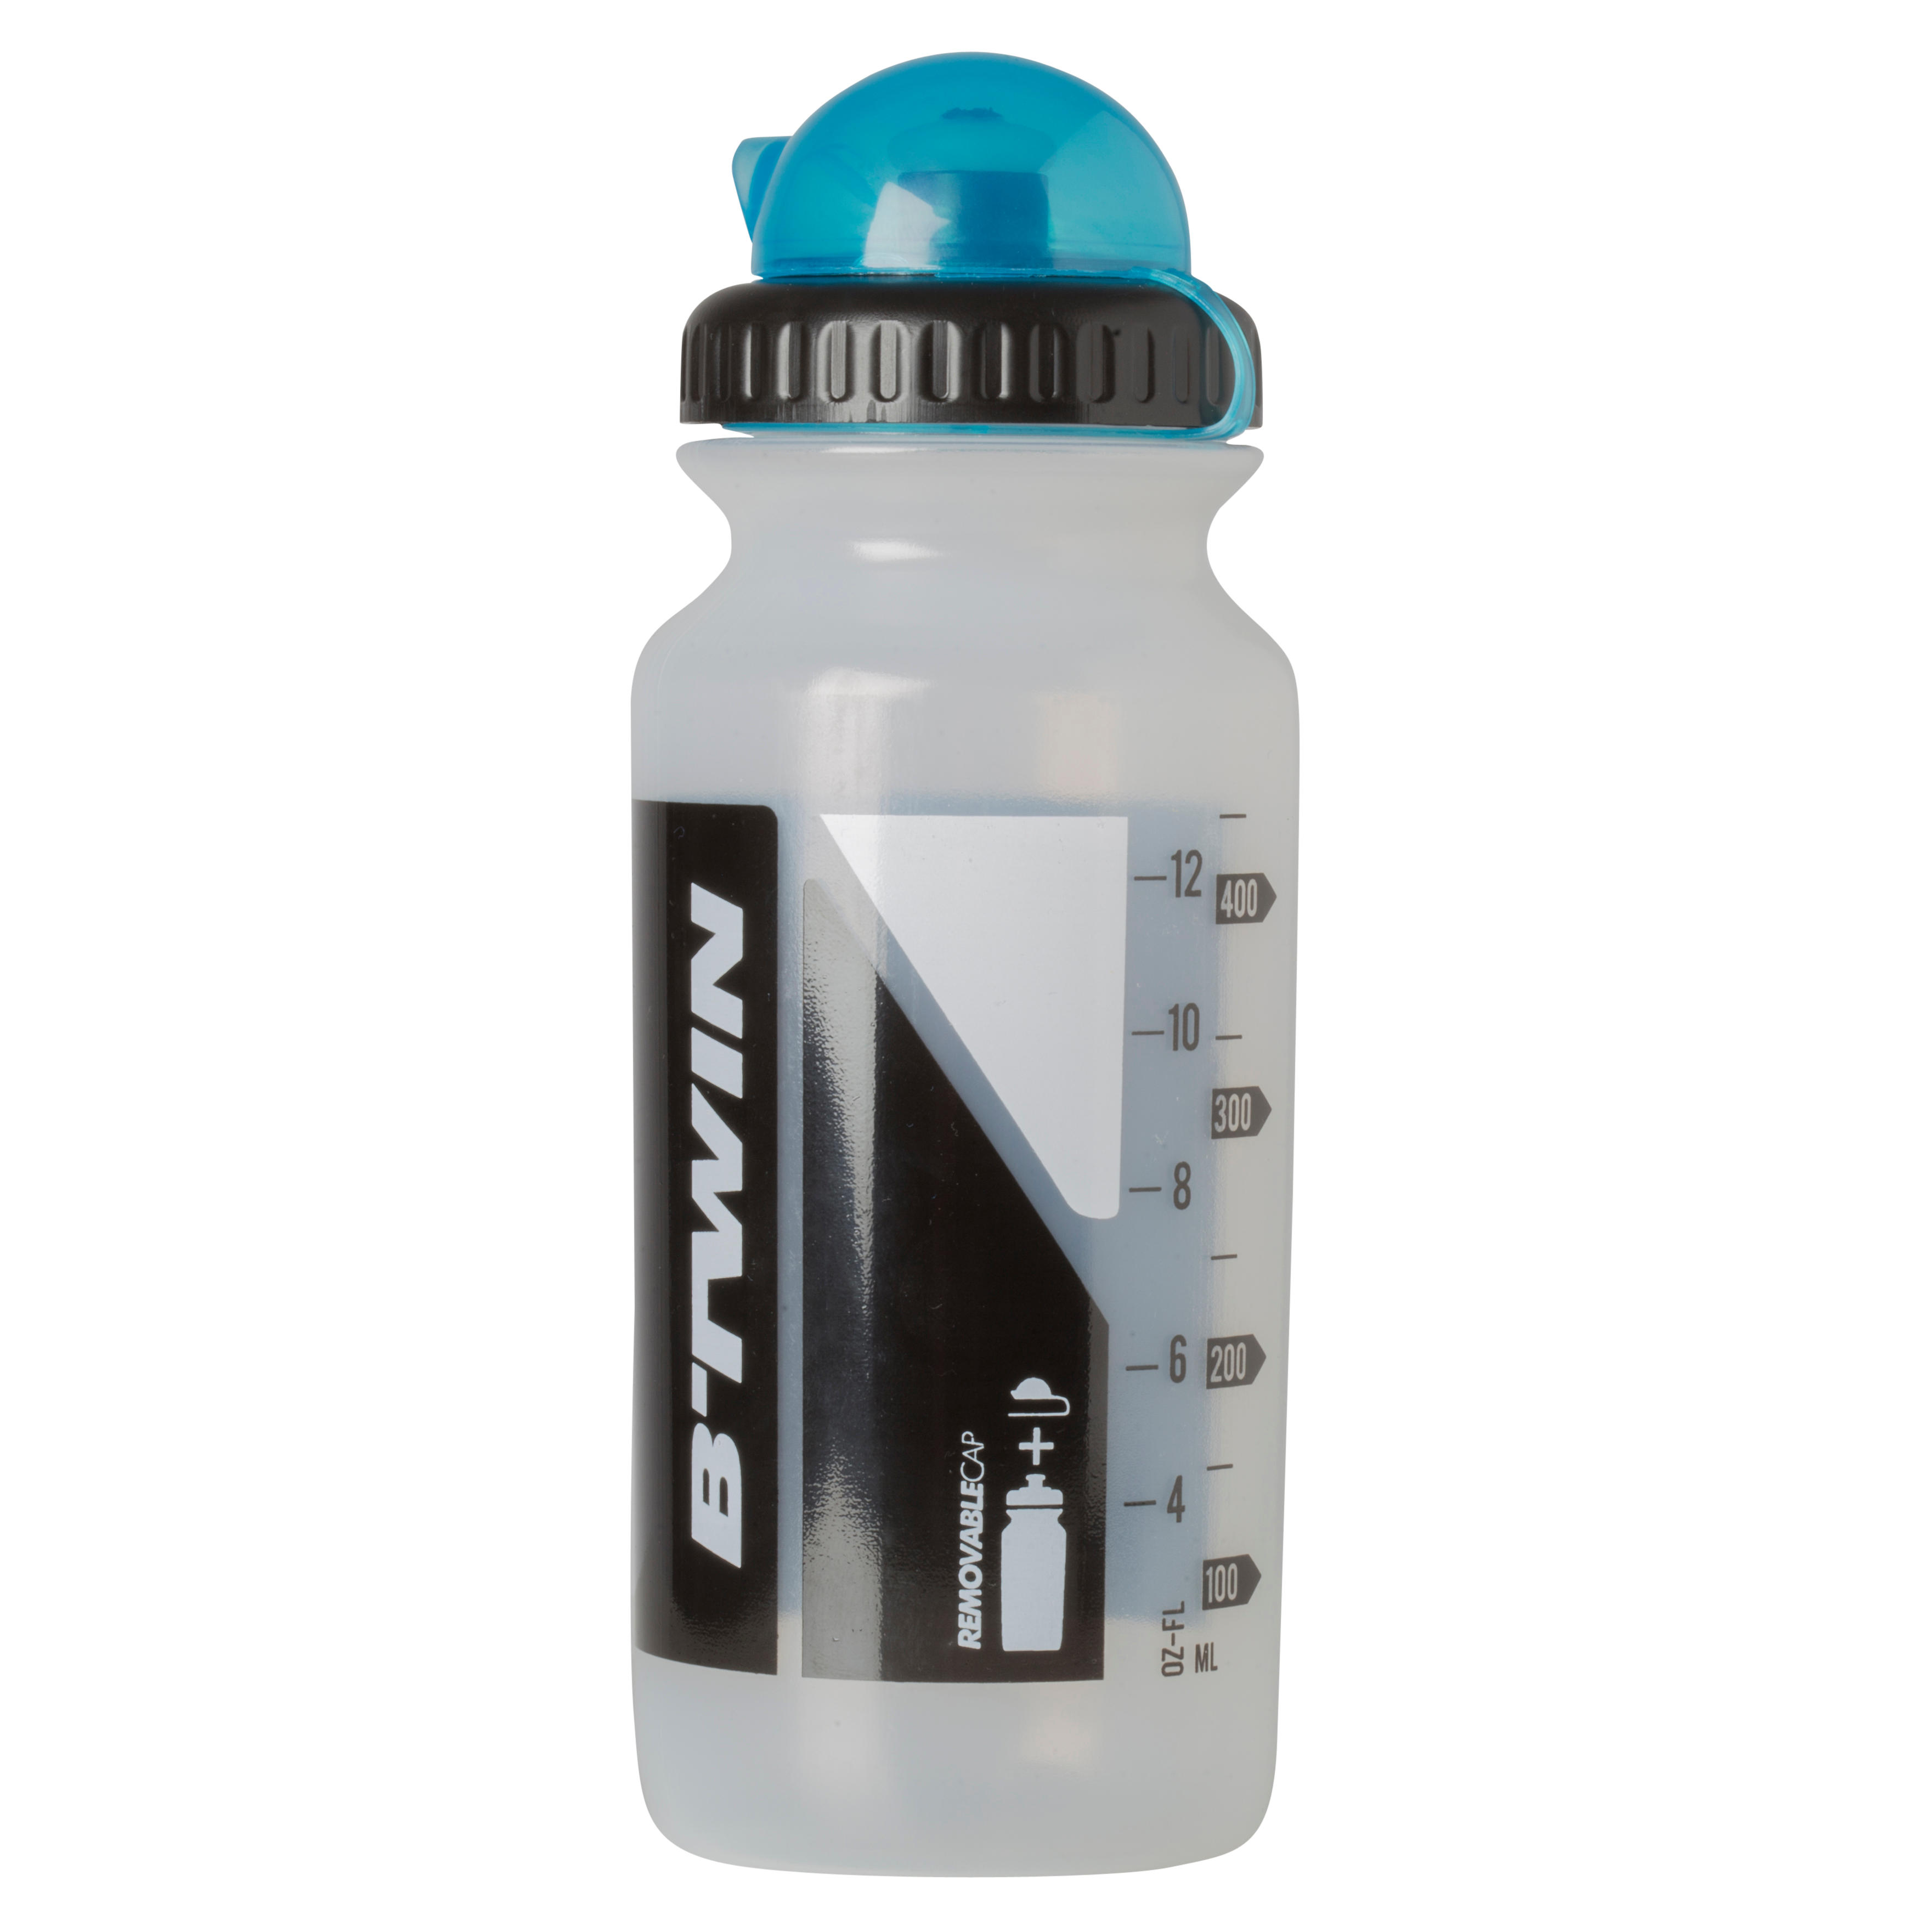 Botella ciclismo 500 ml. transparente